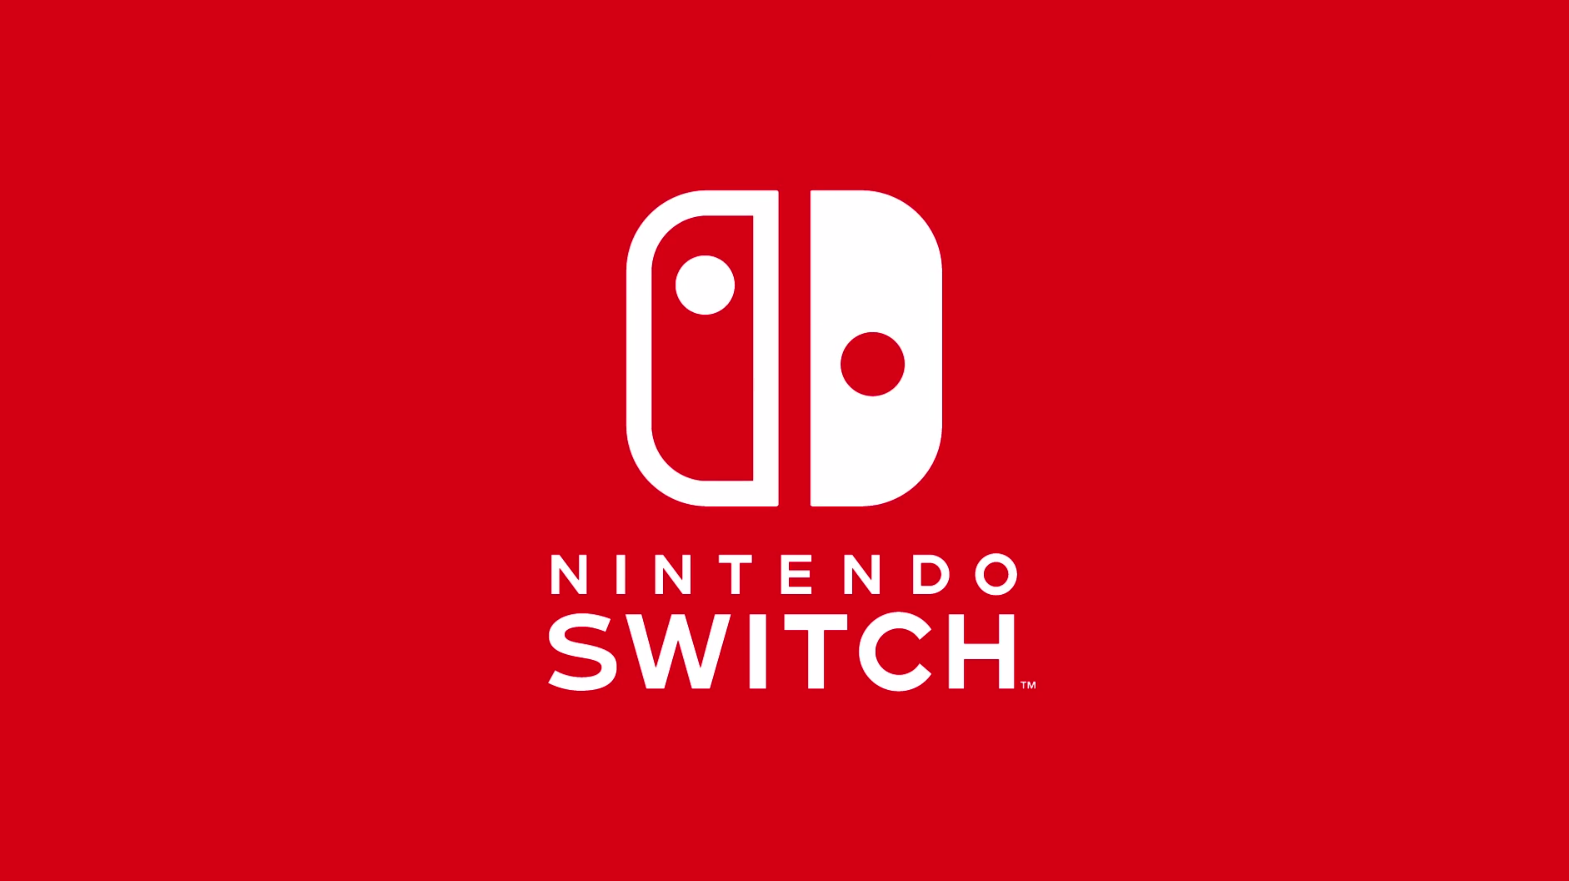 Nintendo Switch Is Playable At PAX South 2017